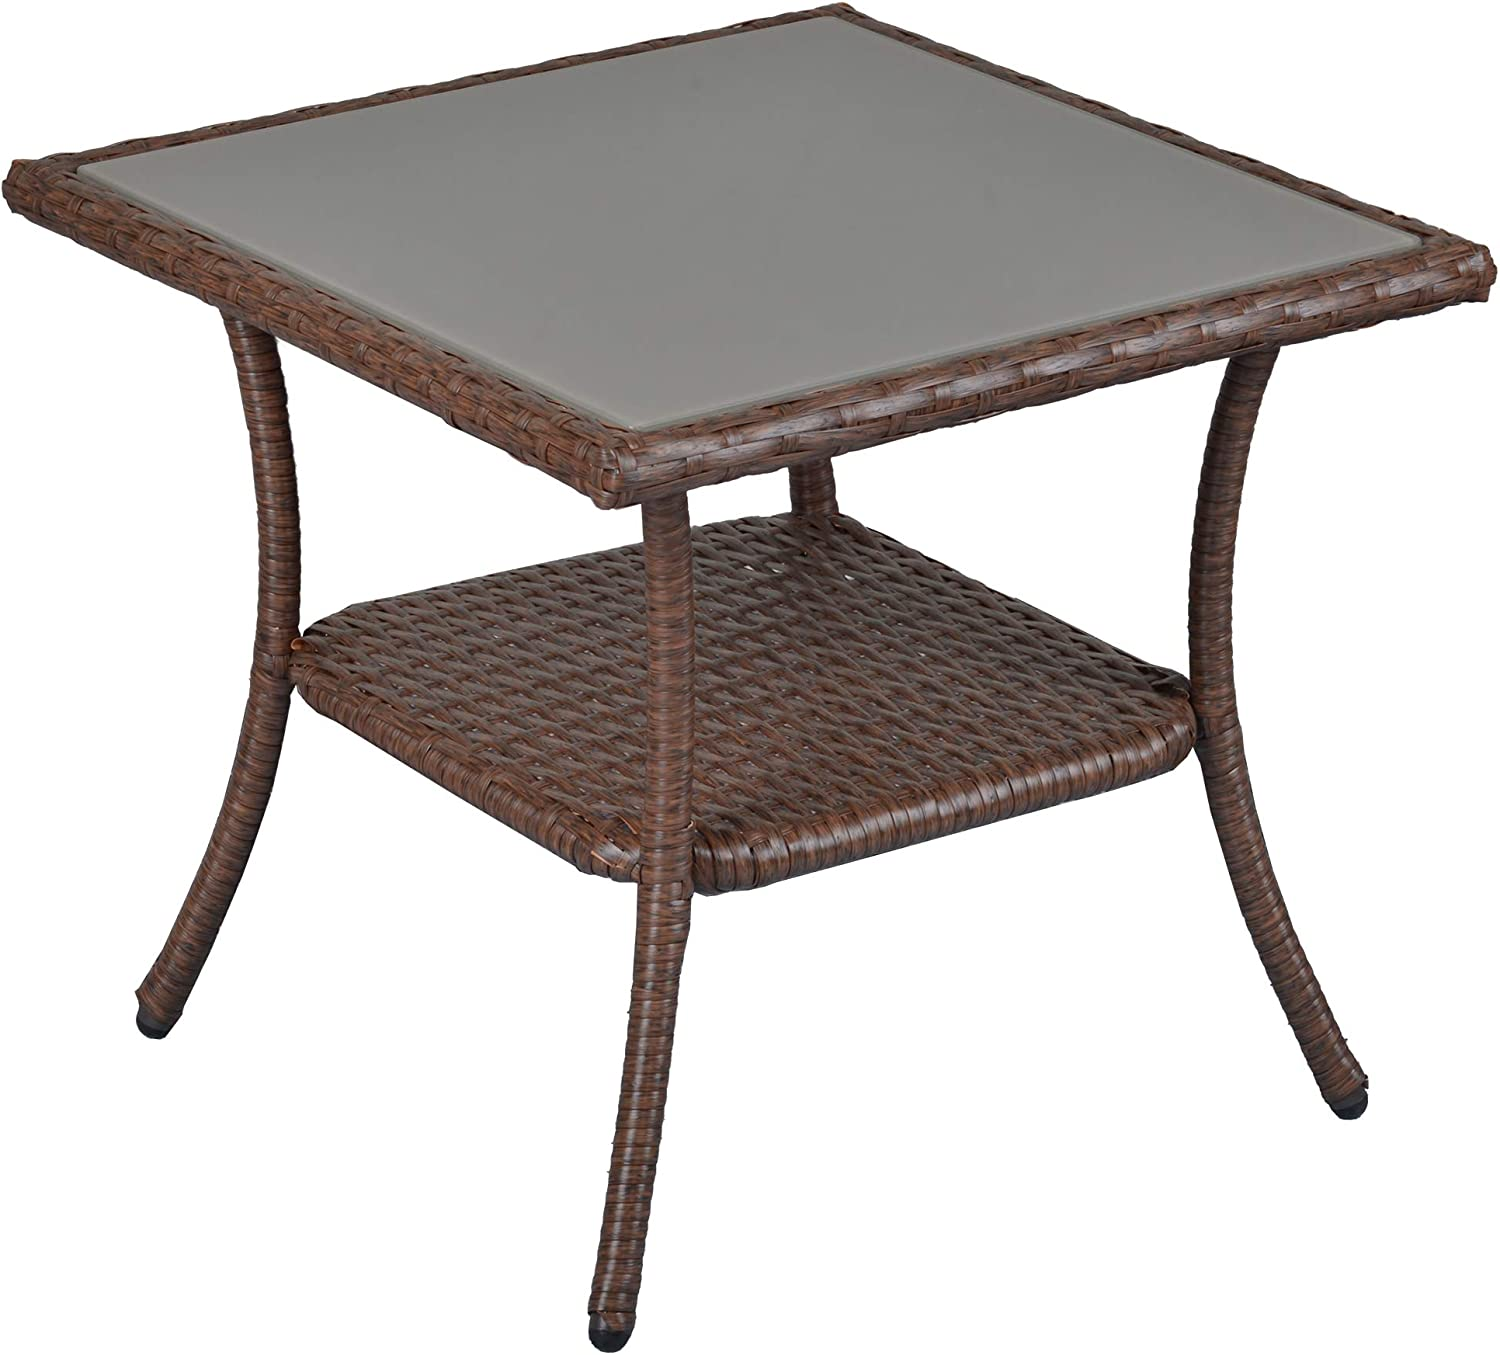 SUNVIVI OUTDOOR Patio Coffee Table, Wicker Small Side Table for Outdoor, Aluminum Frame Square Glass Top End Table, Brown